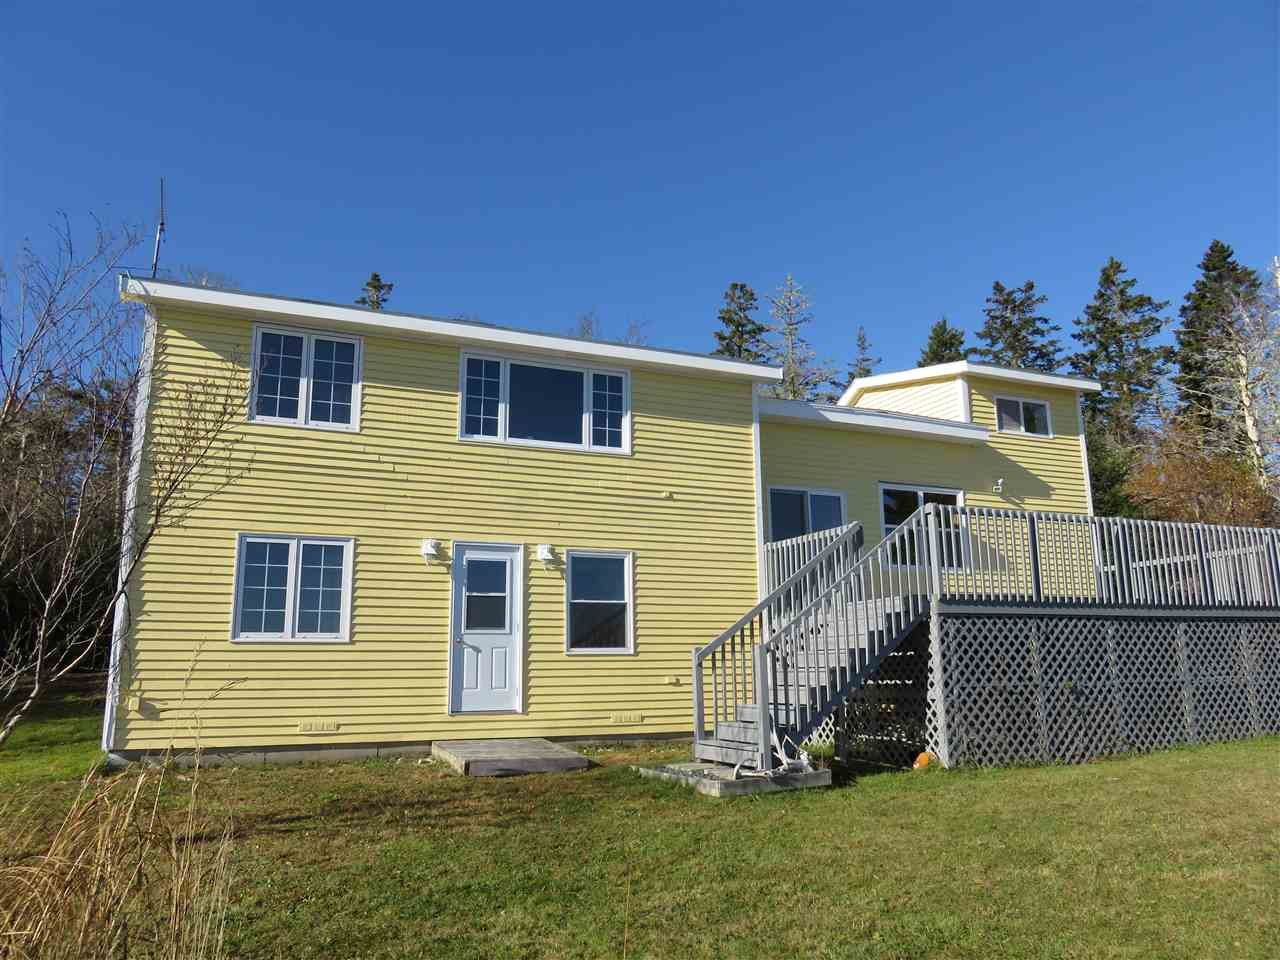 Photo 2: Photos: 783 WEST GREEN HARBOUR Road in West Green Harbour: 407-Shelburne County Residential for sale (South Shore)  : MLS®# 201701314